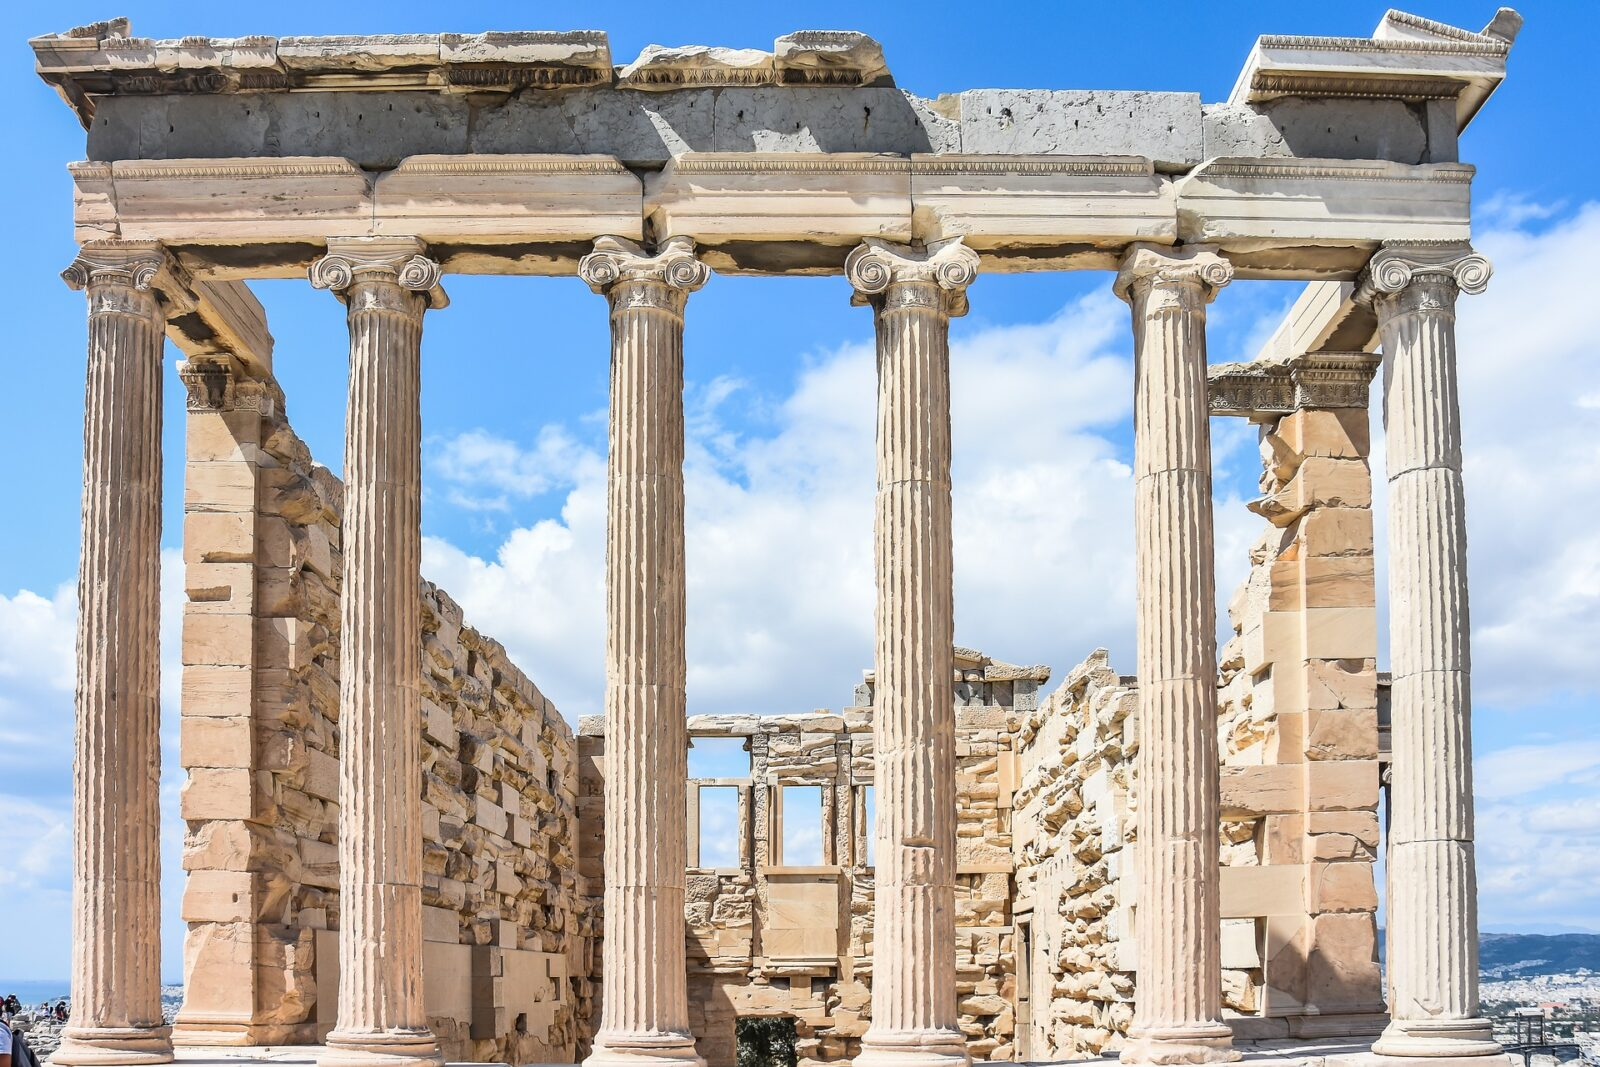 Acropolis in Ancient Greece